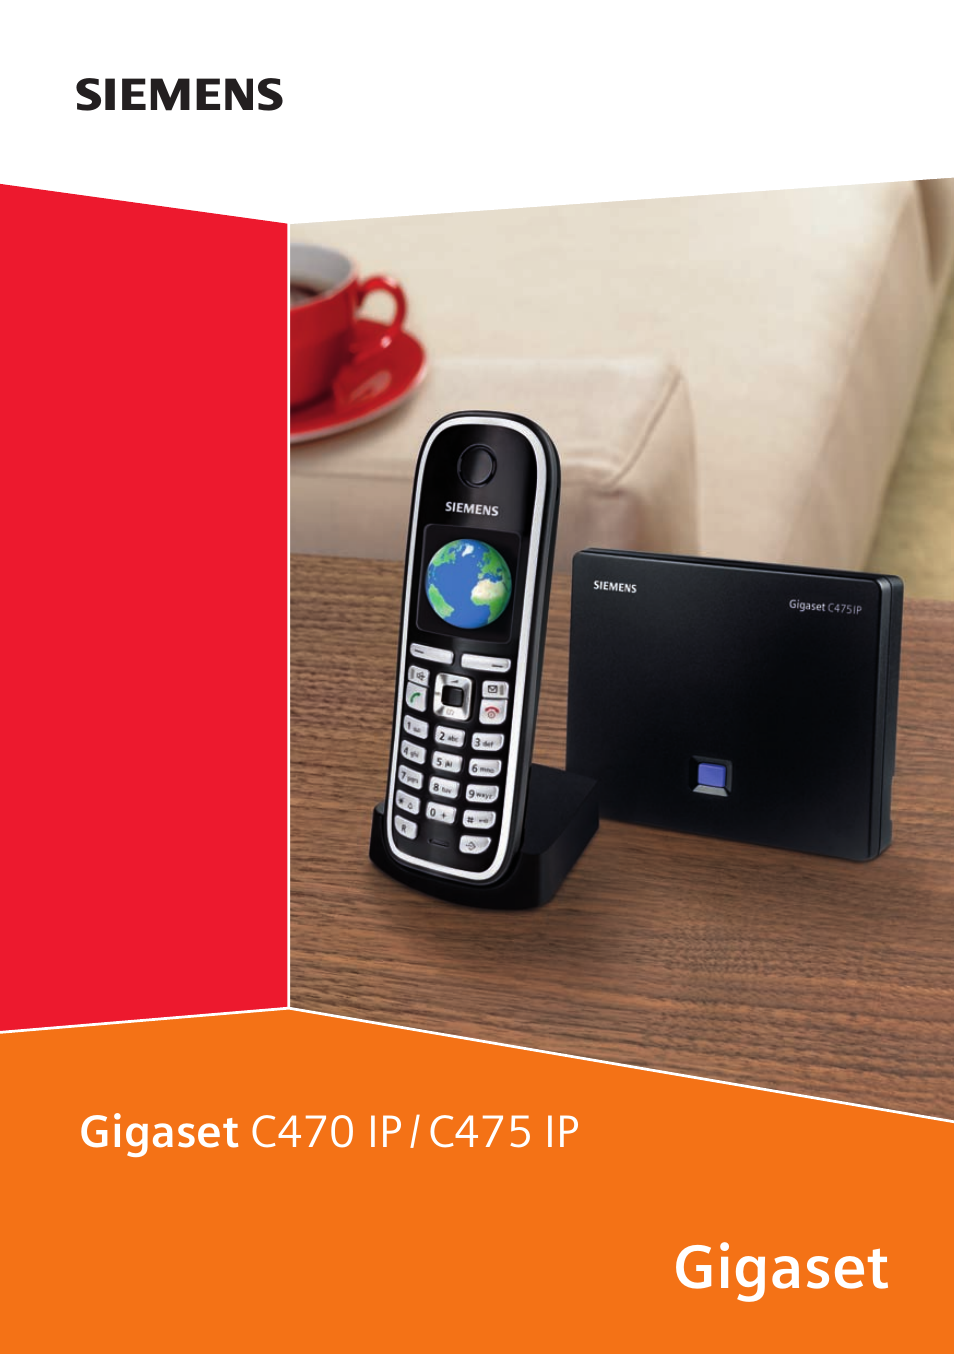 Siemens Gigaset C475 Ip User Manual